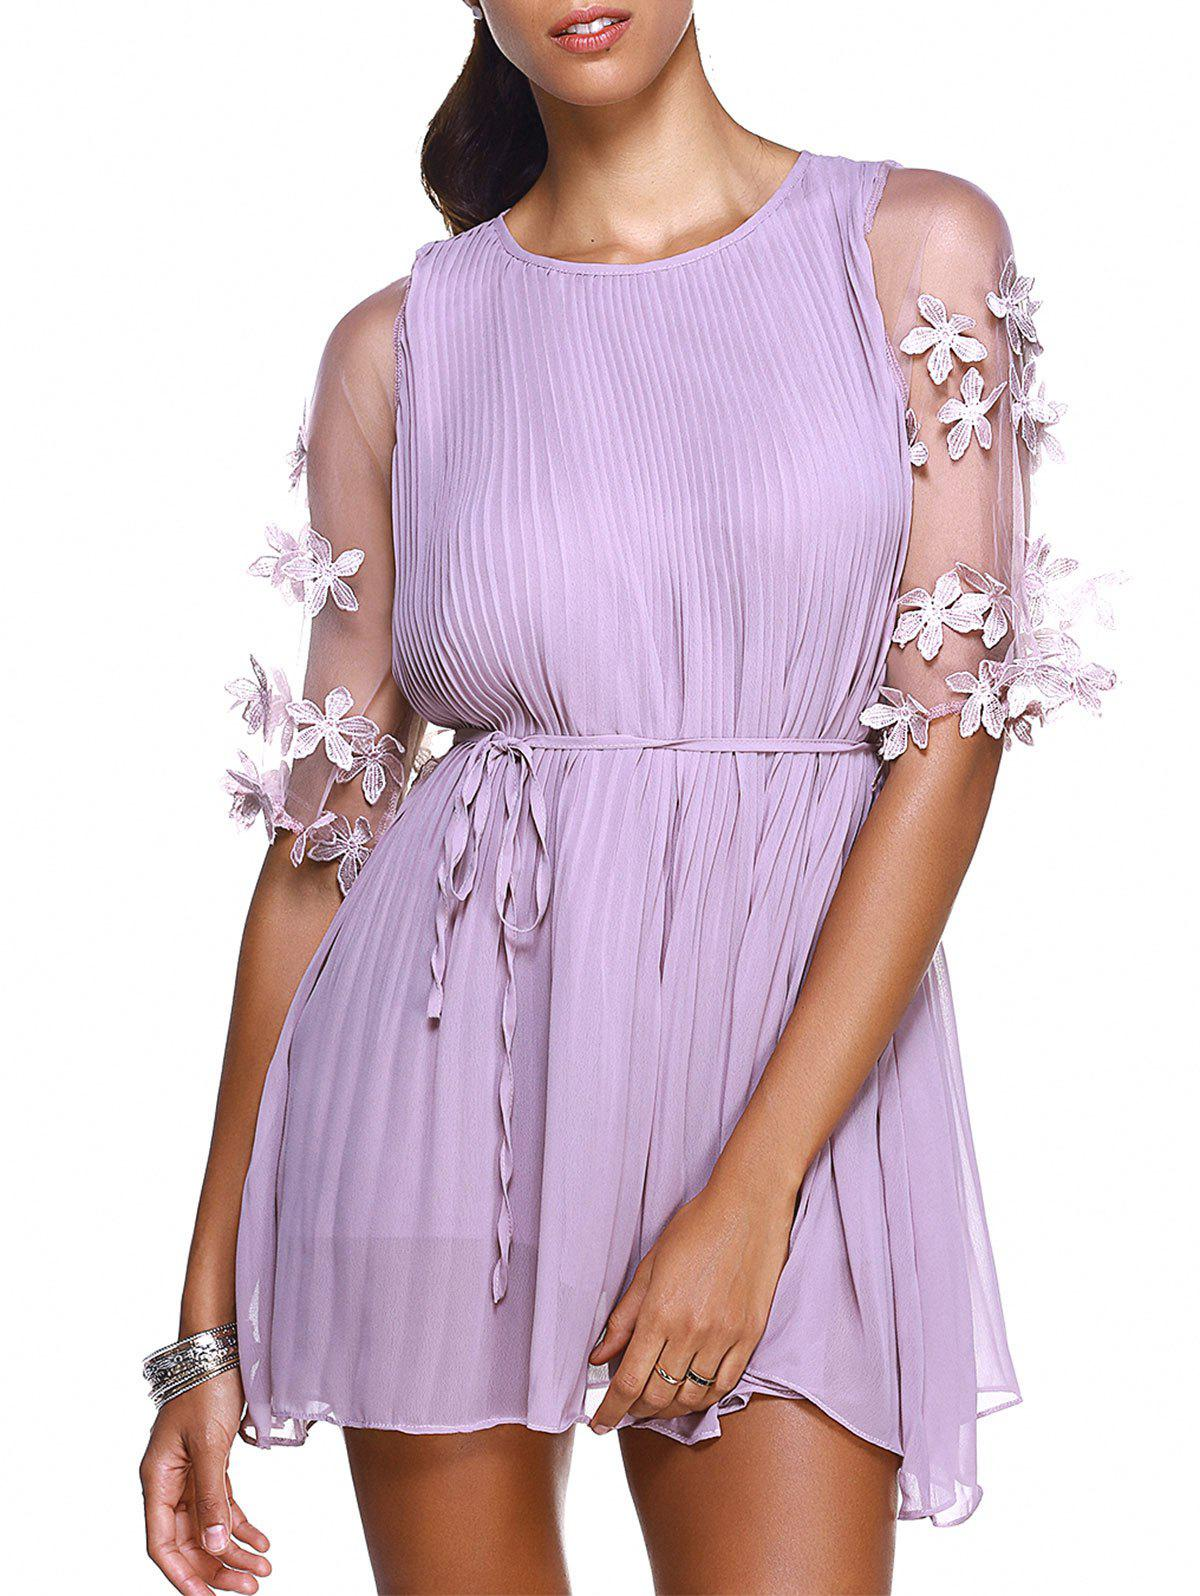 Trendy Round Collar Stereo Flower Embellished Pleated Women's Dress - LIGHT PURPLE ONE SIZE(FIT SIZE XS TO M)